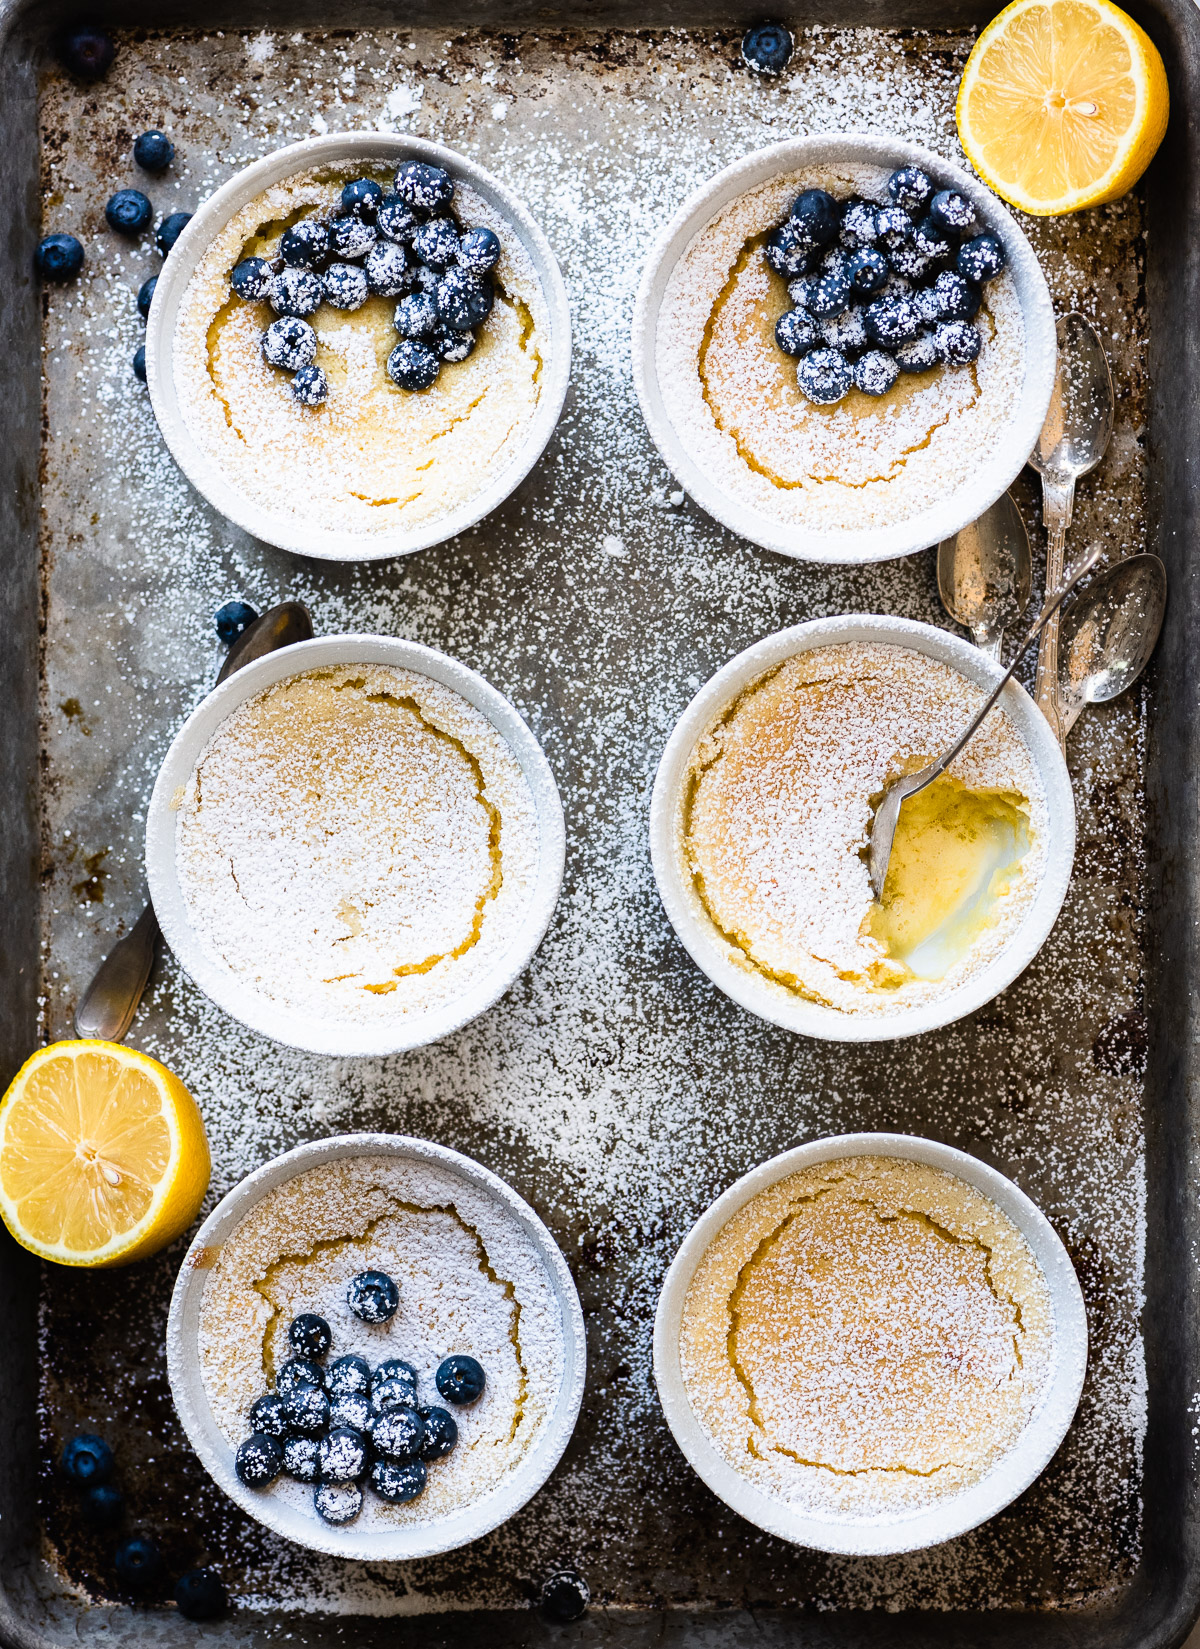 flourless warm lemon pudding cakes on a baking sheet with lemons and blueberries